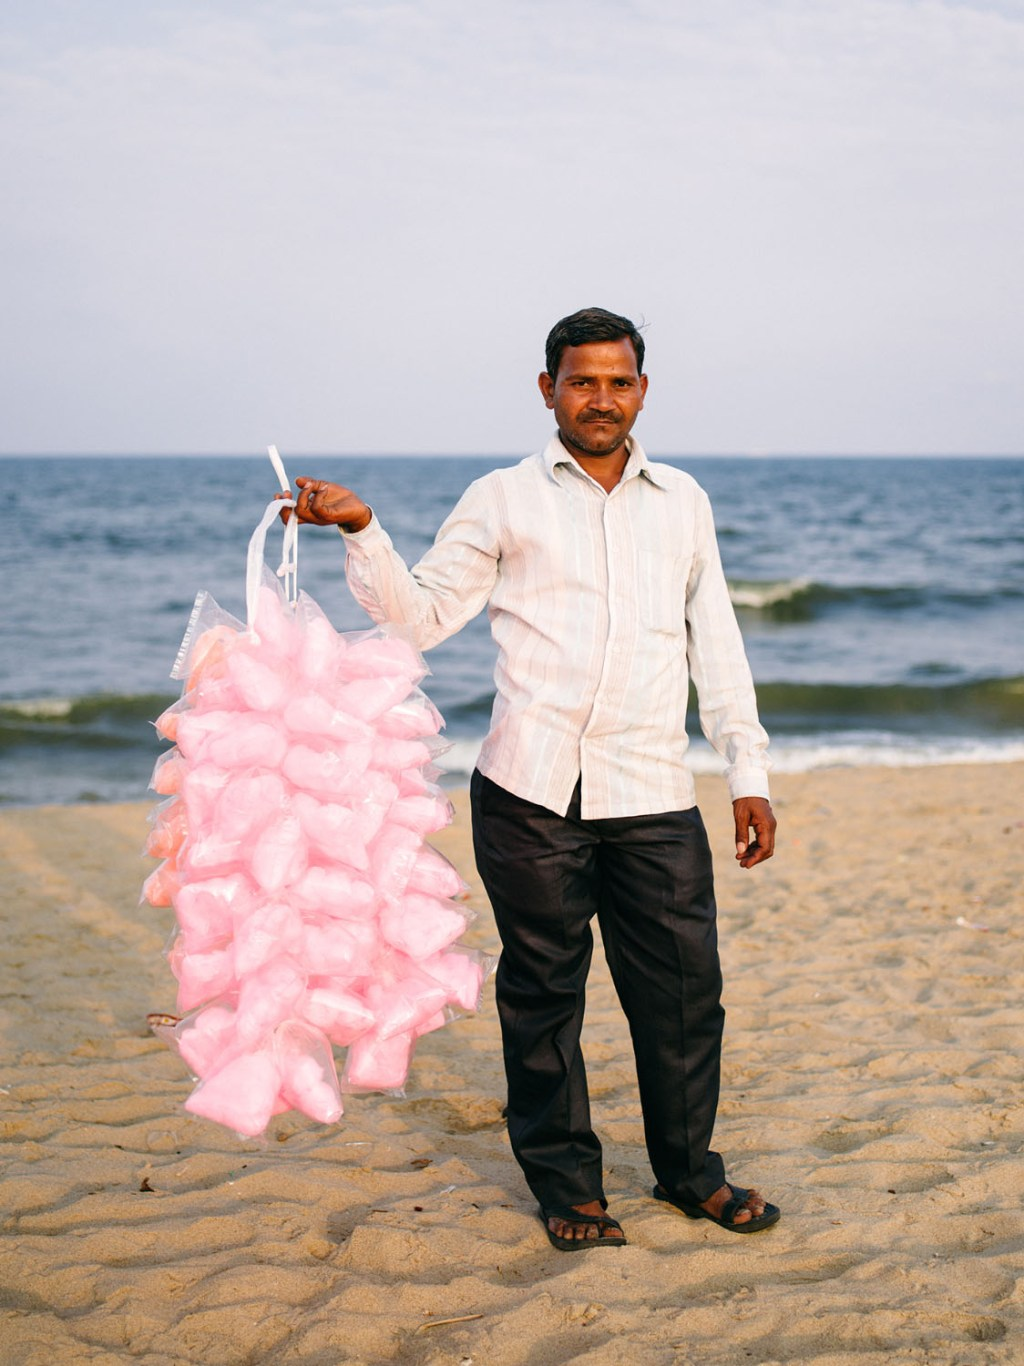 many with bags of cotton candy - 7 Tips to Make Travel Photography Interesting Again